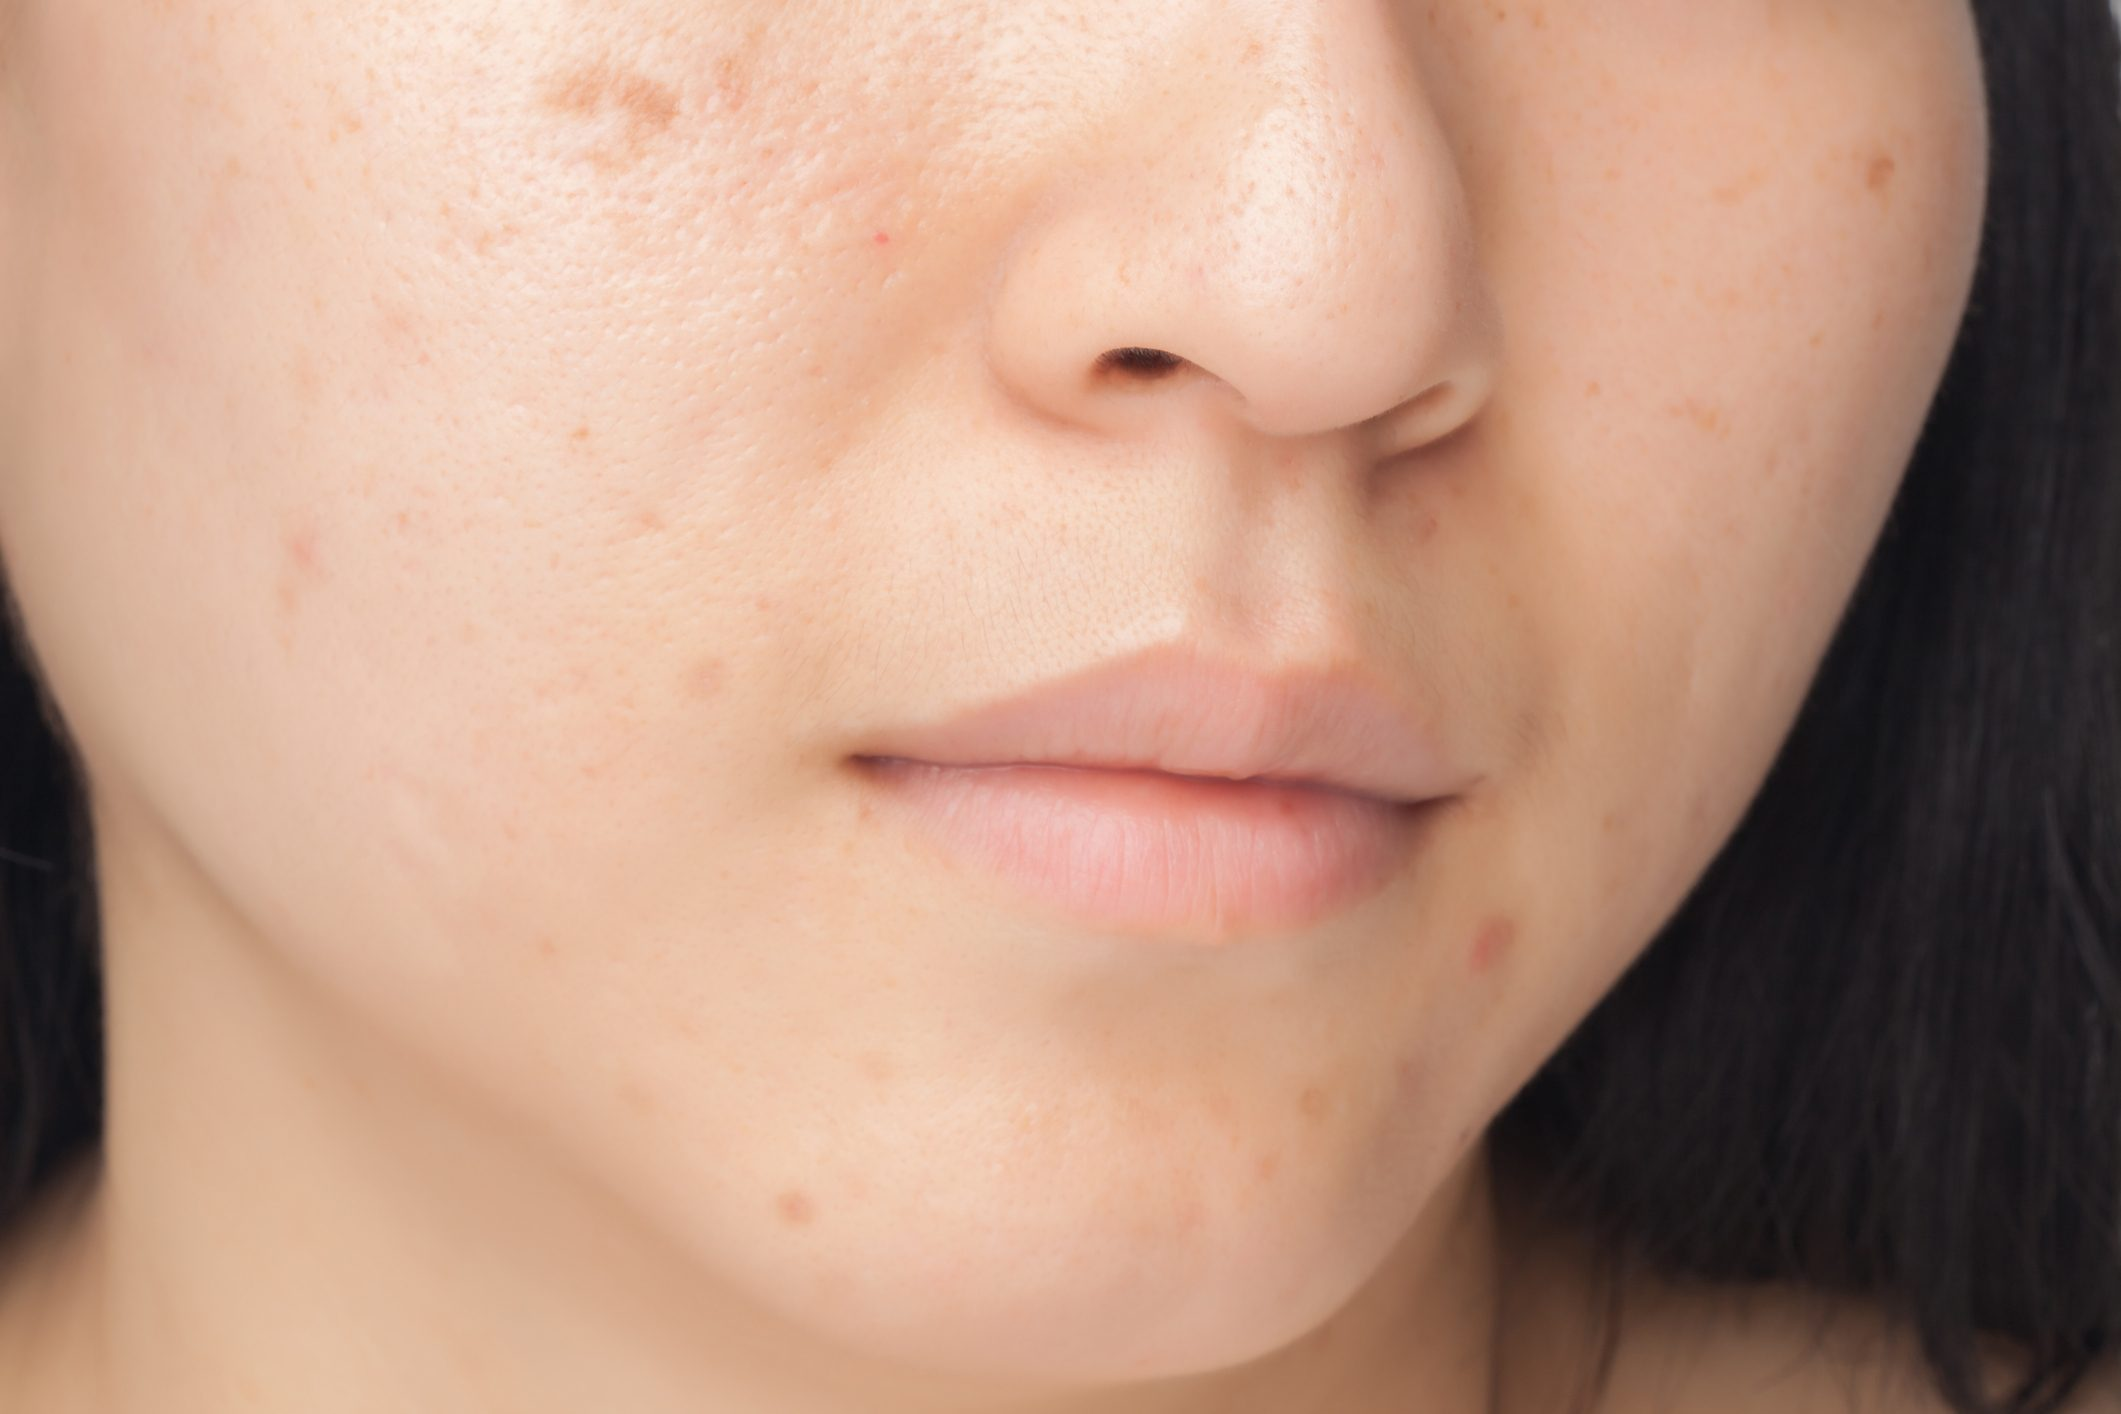 close up of woman's face with spots